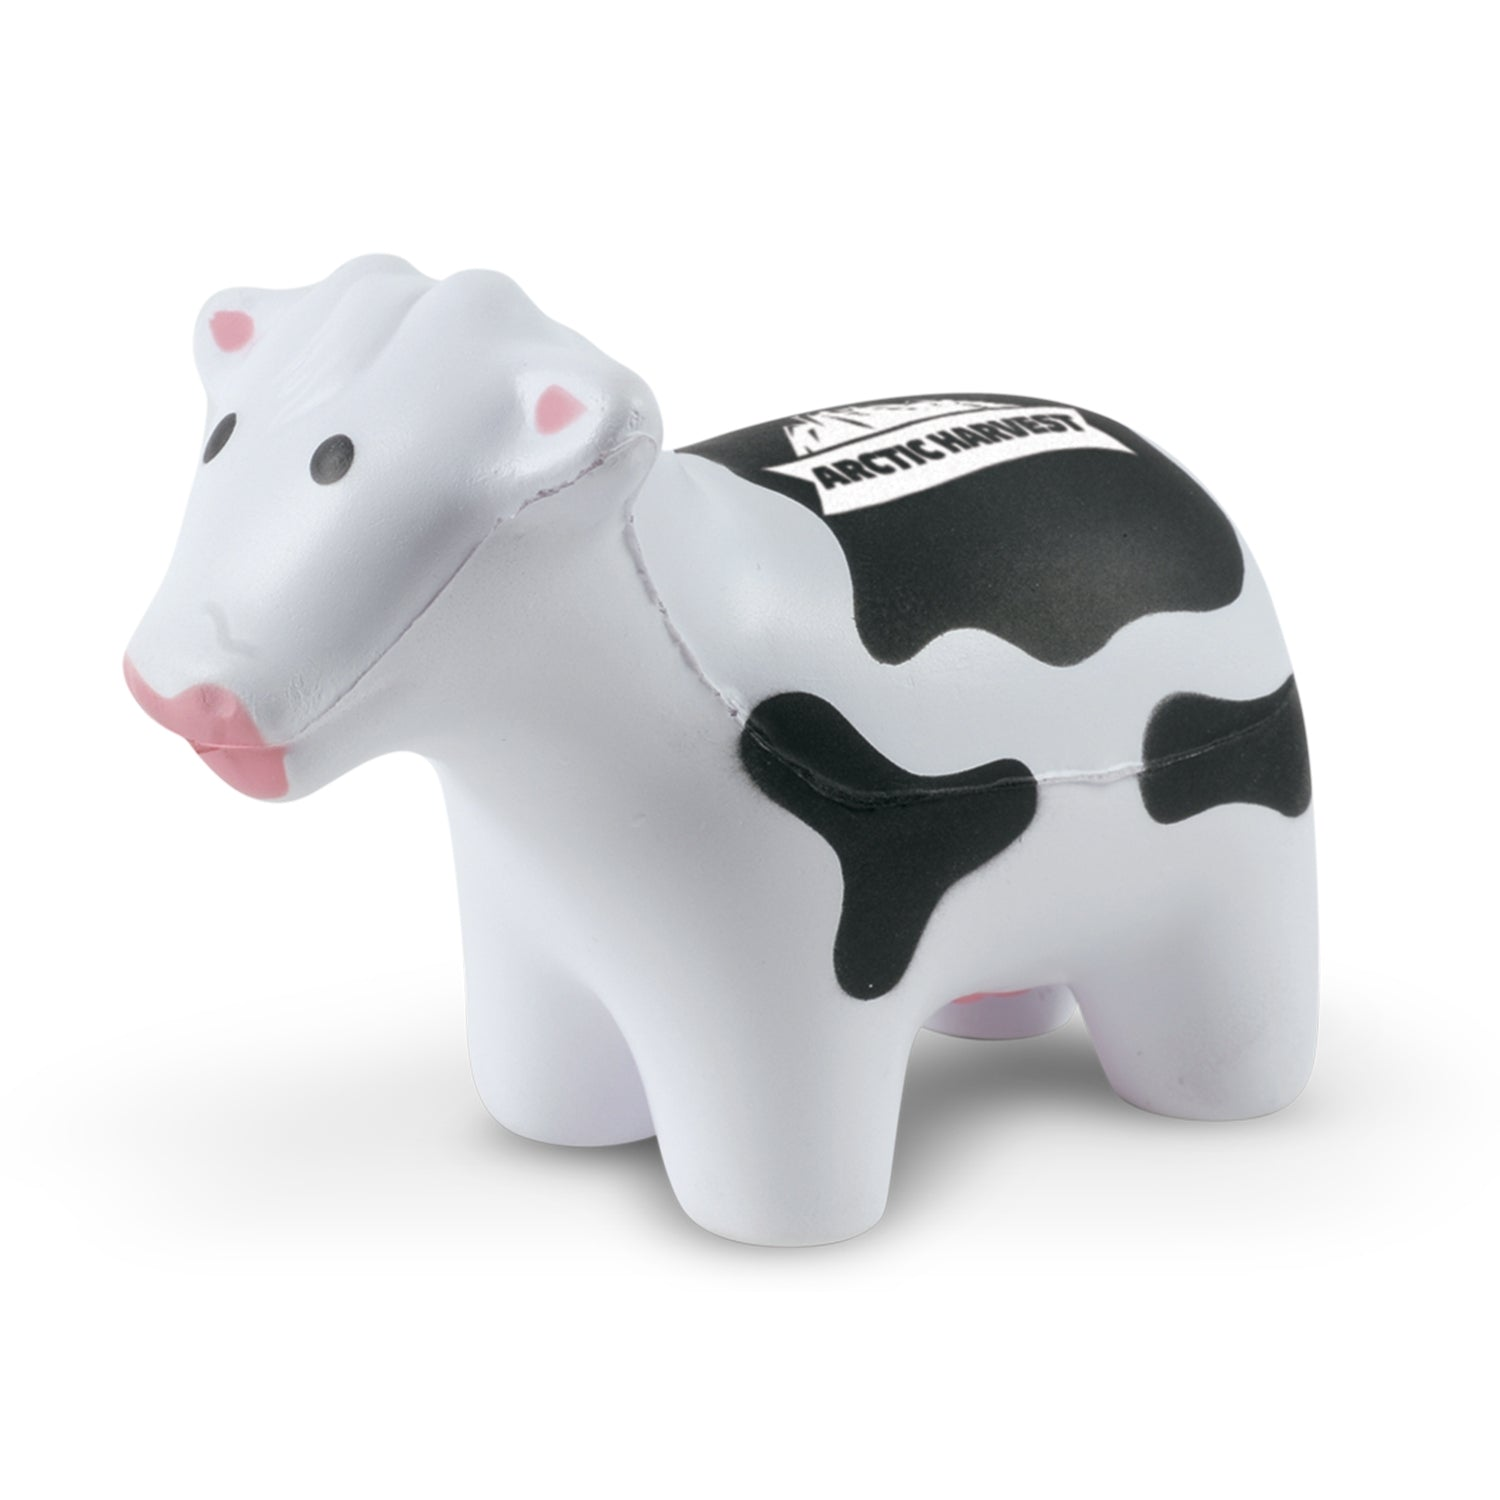 Stress Cow(SSB-37T) - greenpac.com.au